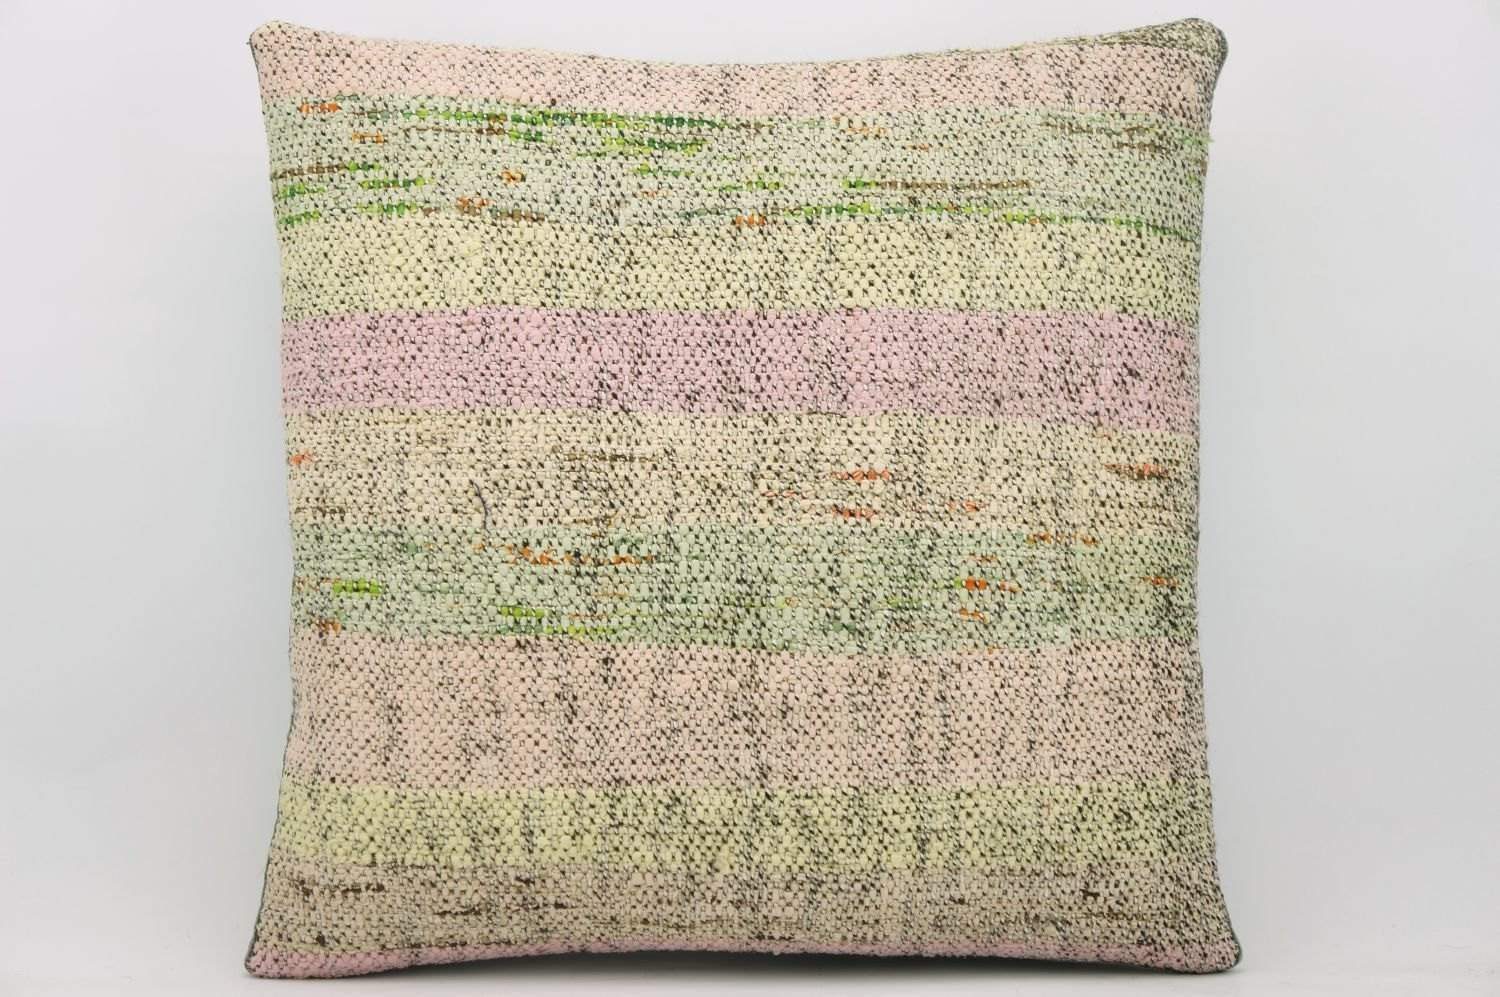 16x16 Hand Woven wool light green pinkish striped Kilim Pillow cushion 1048_A Wool cushion